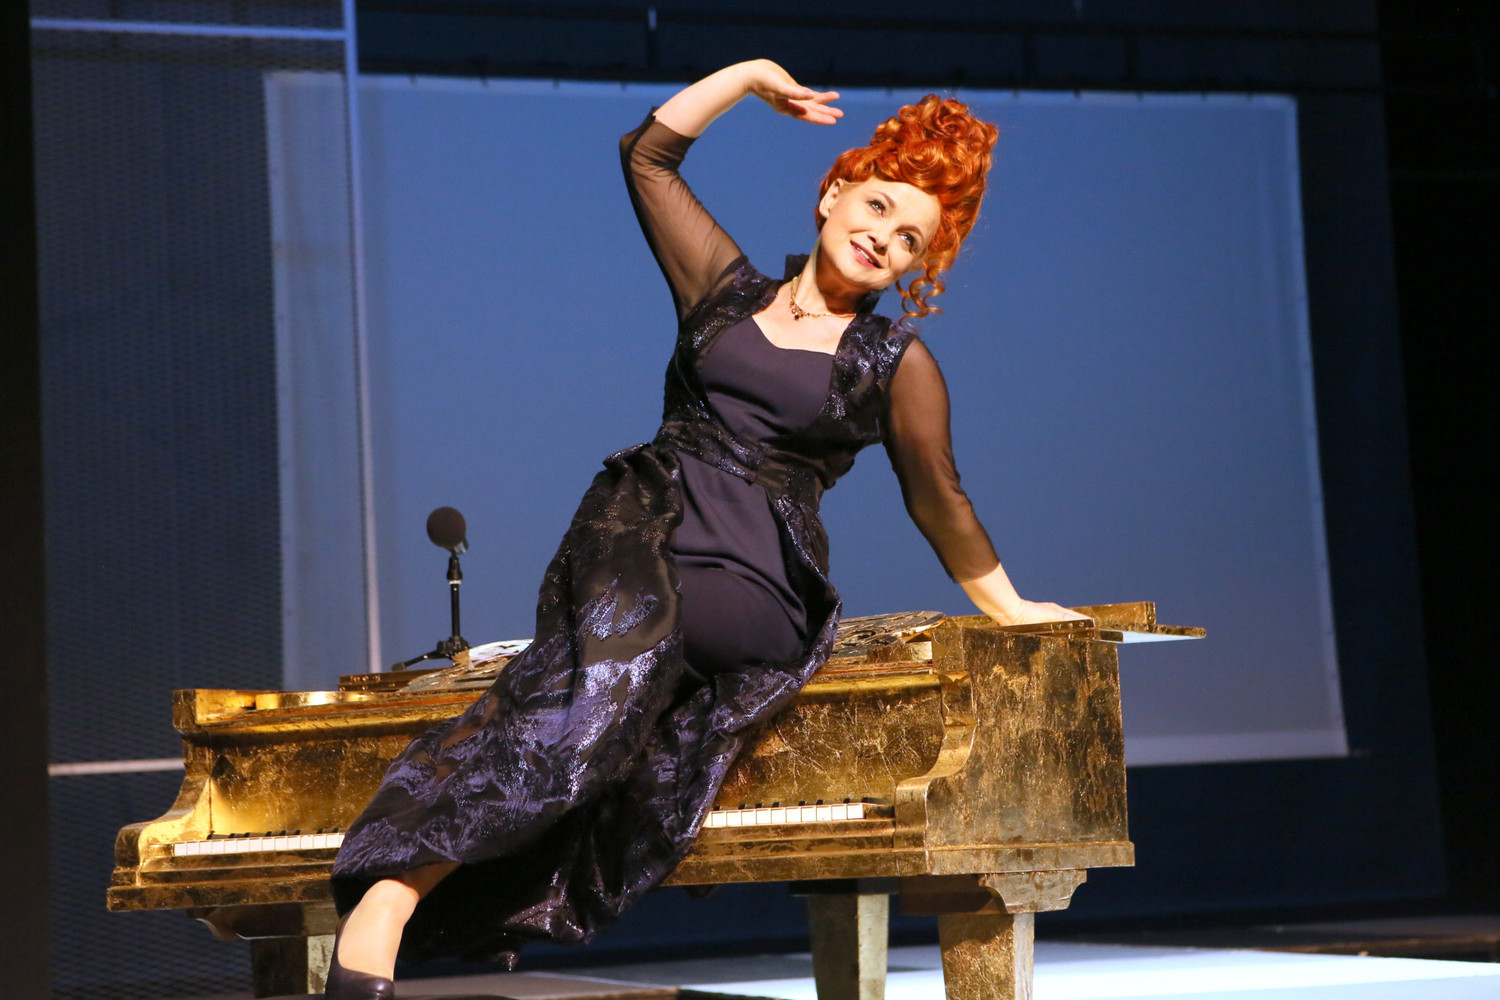 BWW Review: I CANNOT GET MARRIED  at TEATR POLSKI WROCLAW - I cannot stop laughing!